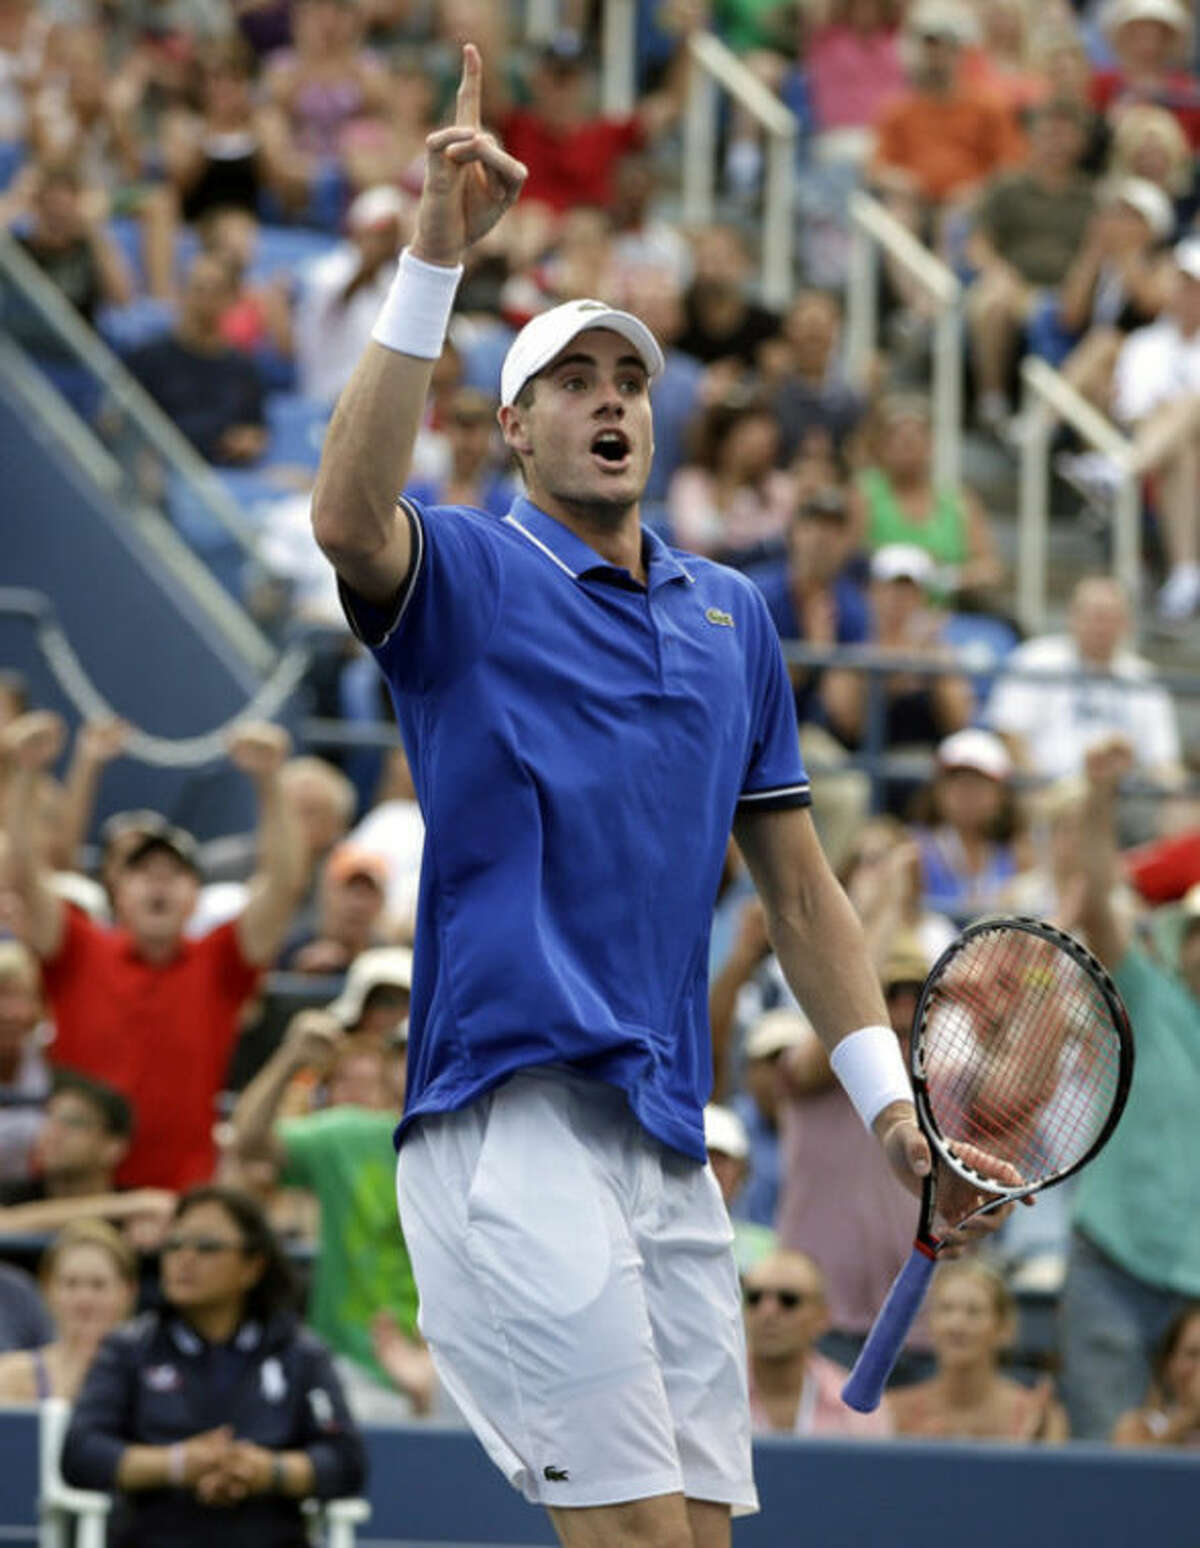 John Isner reacts after a point against Philipp Kohlschreiber, of Germany, during the third round of the 2013 U.S. Open tennis tournament, Saturday, Aug. 31, 2013, in New York. (AP Photo/Darron Cummings)